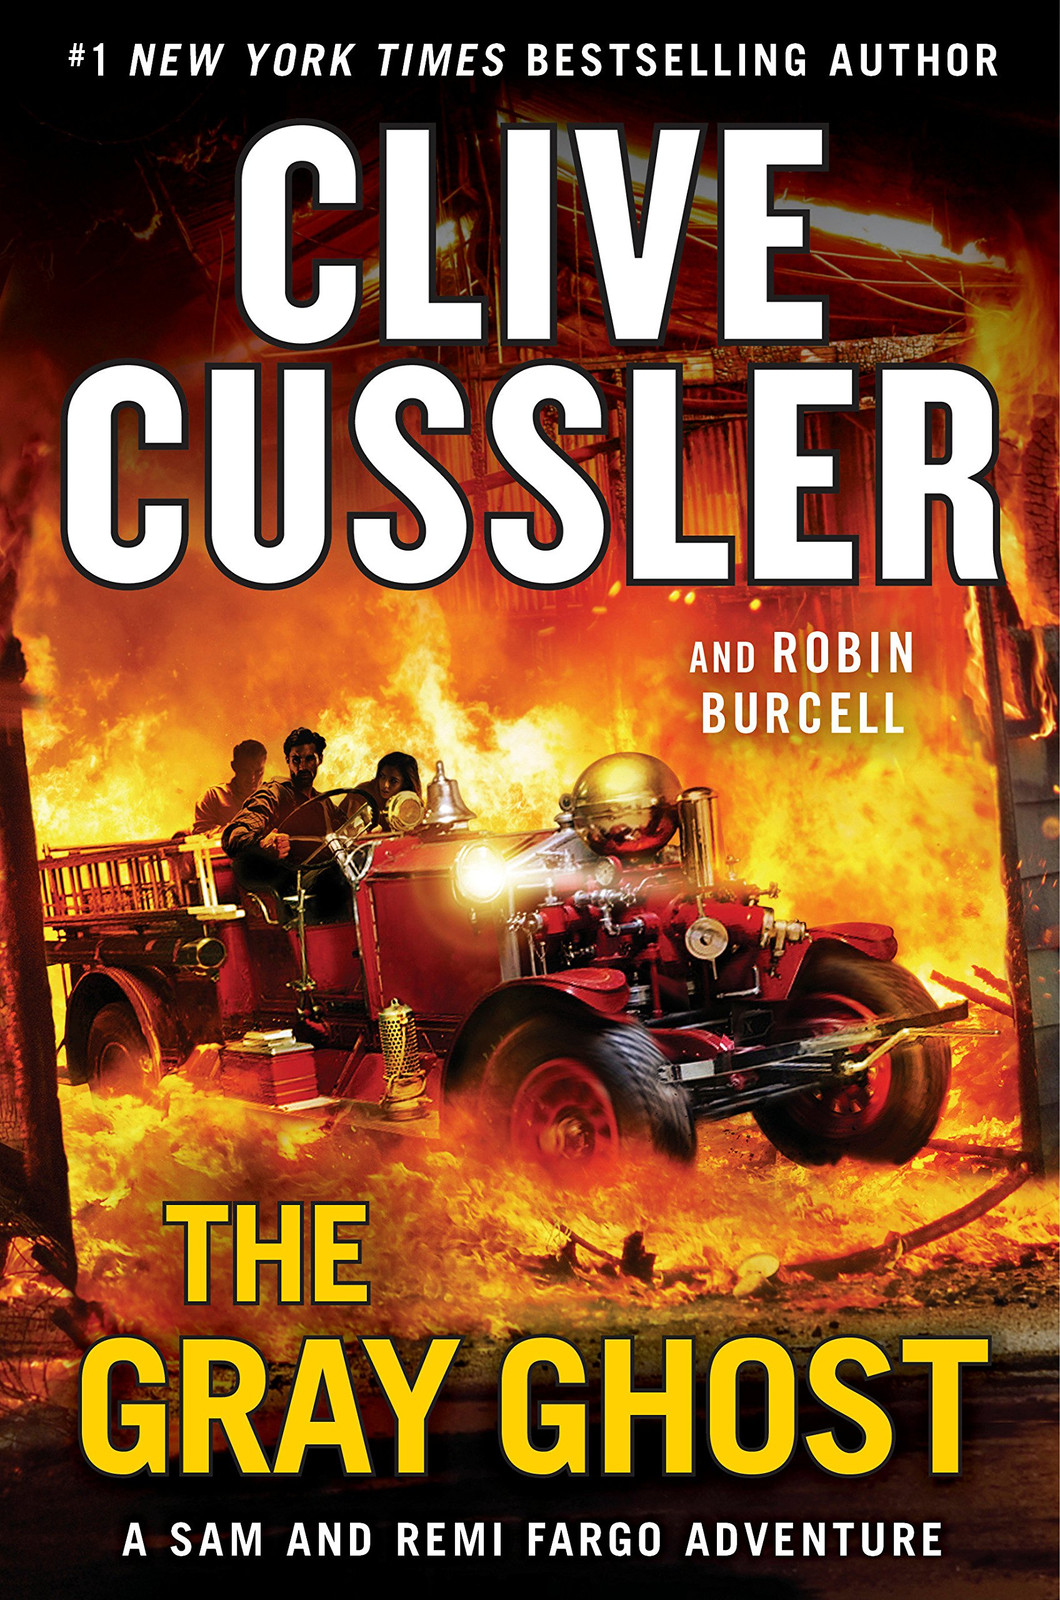 The Gray Ghost, by Clive Cussler and Robin Burcell